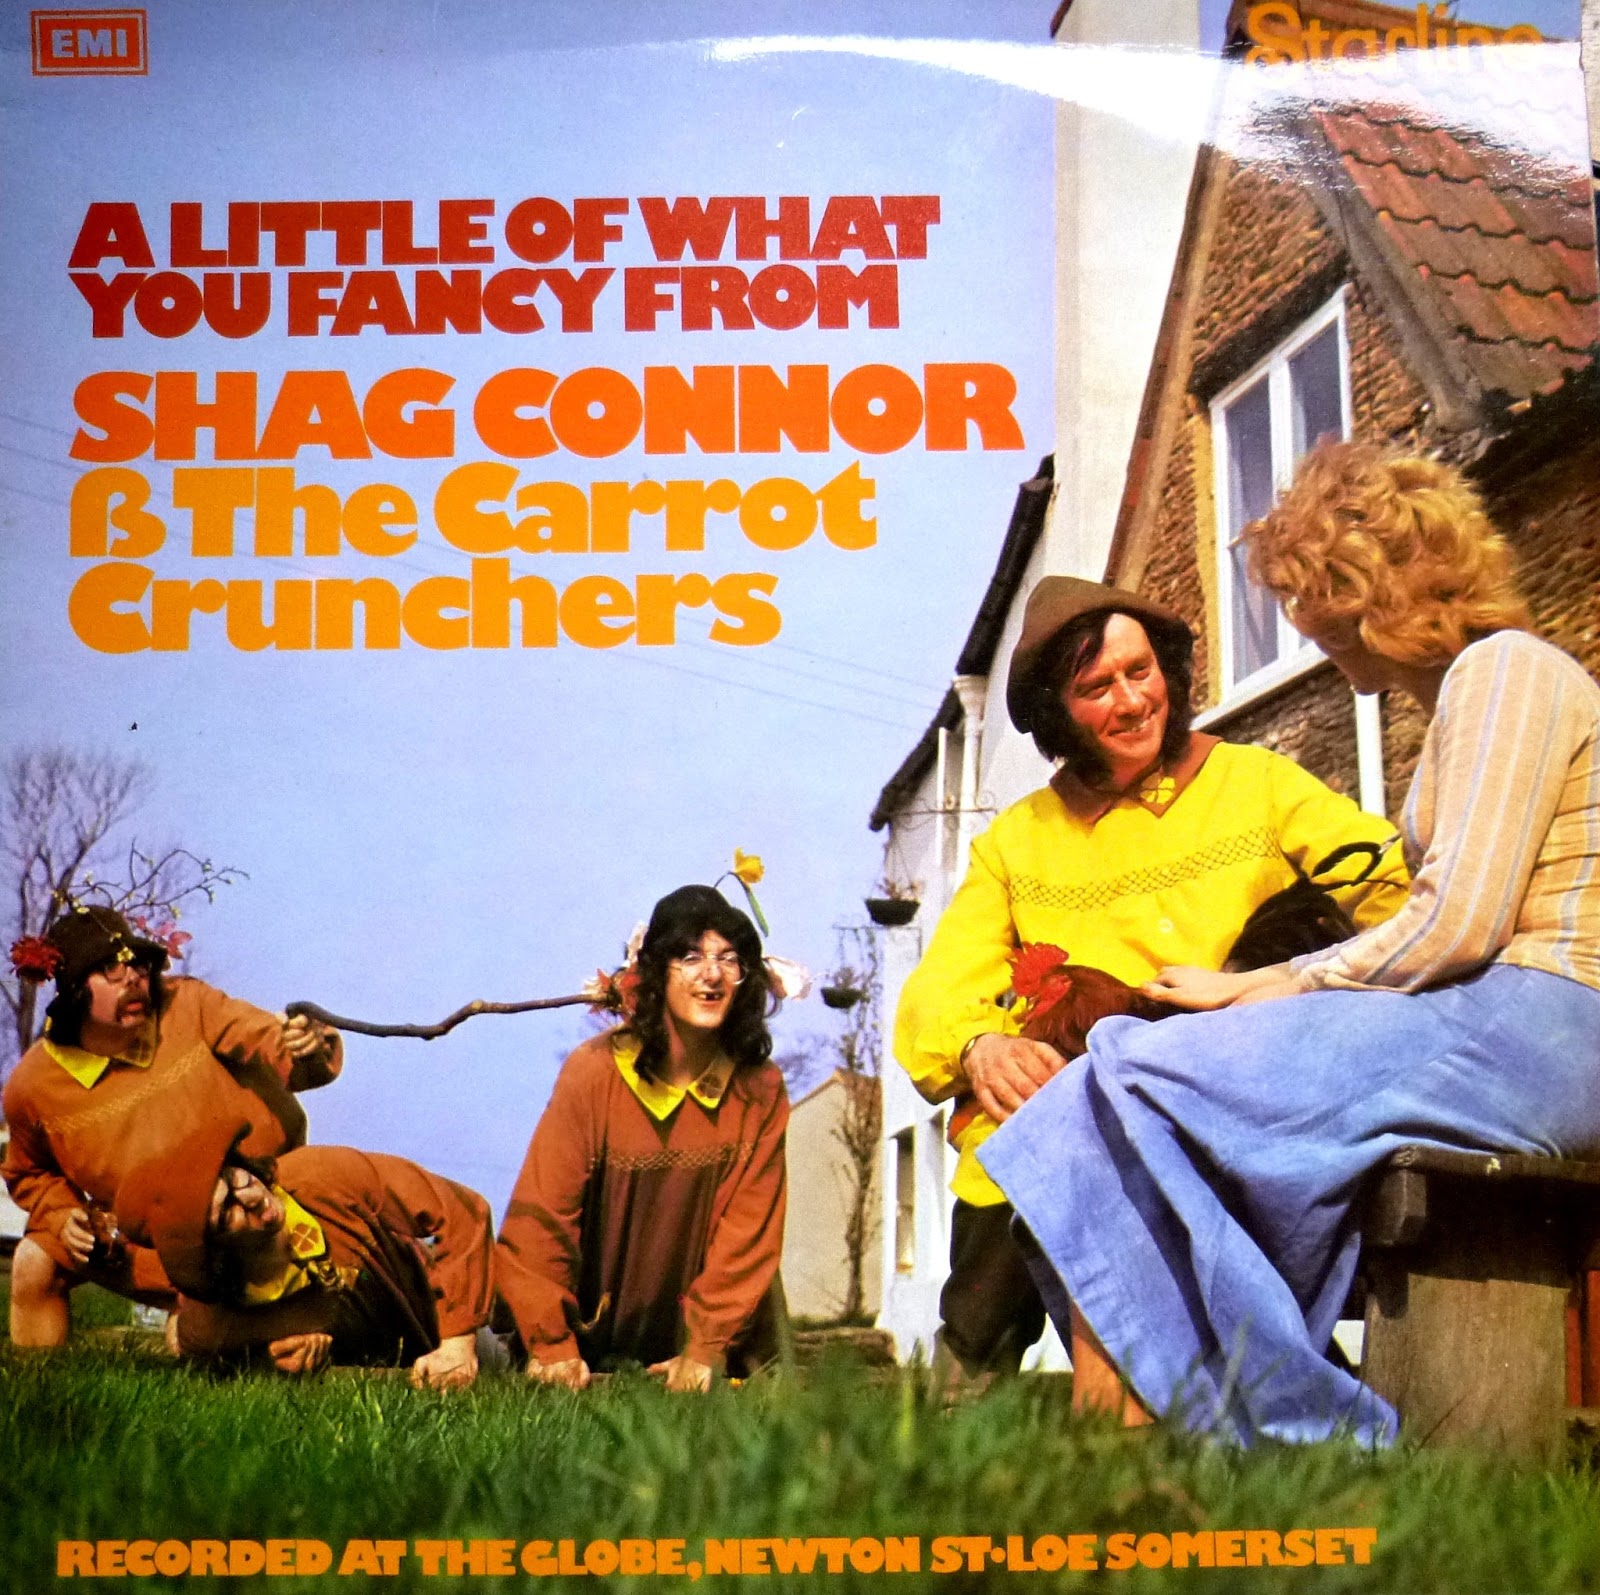 An Lp on the cheapo Starline label from 1974 featuring Shag Connors & The  Carrot Crunchers who were similar the Wurzels but did vary their act to  include ...